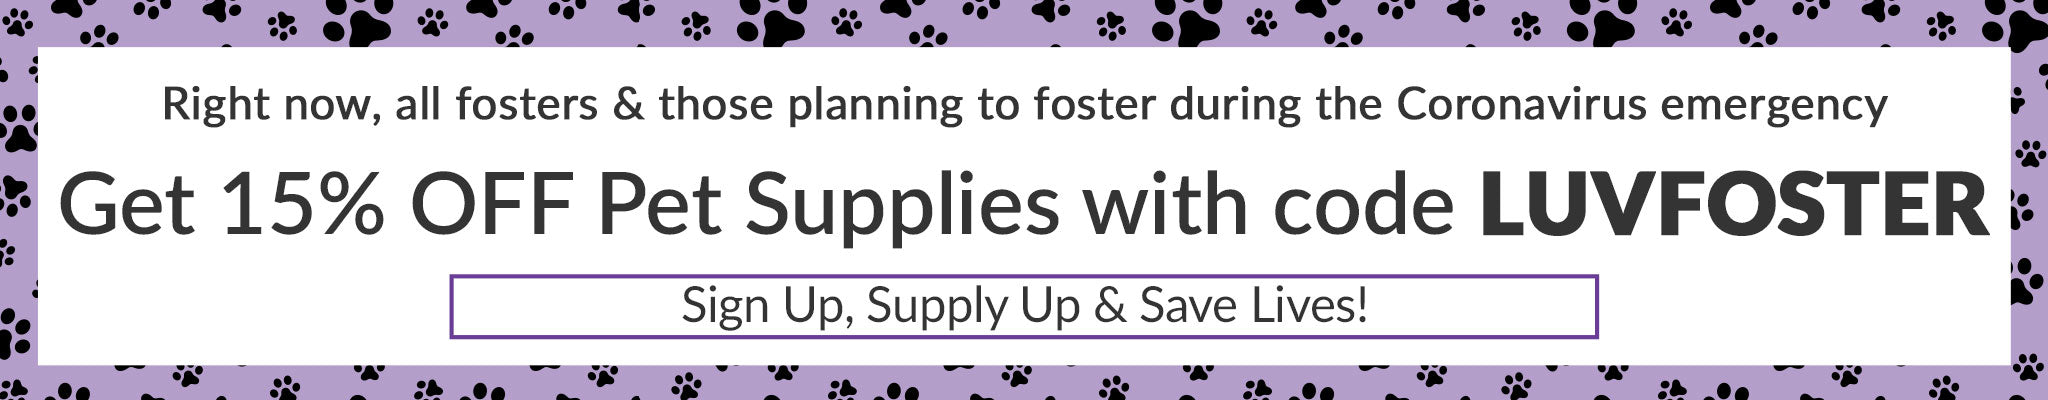 Right now, all fosters & those planning to foster during the Coronavirus emergency get 15% off Pet Supplies with code LUVFOSTER | Sign up, Supply up & Save lives!